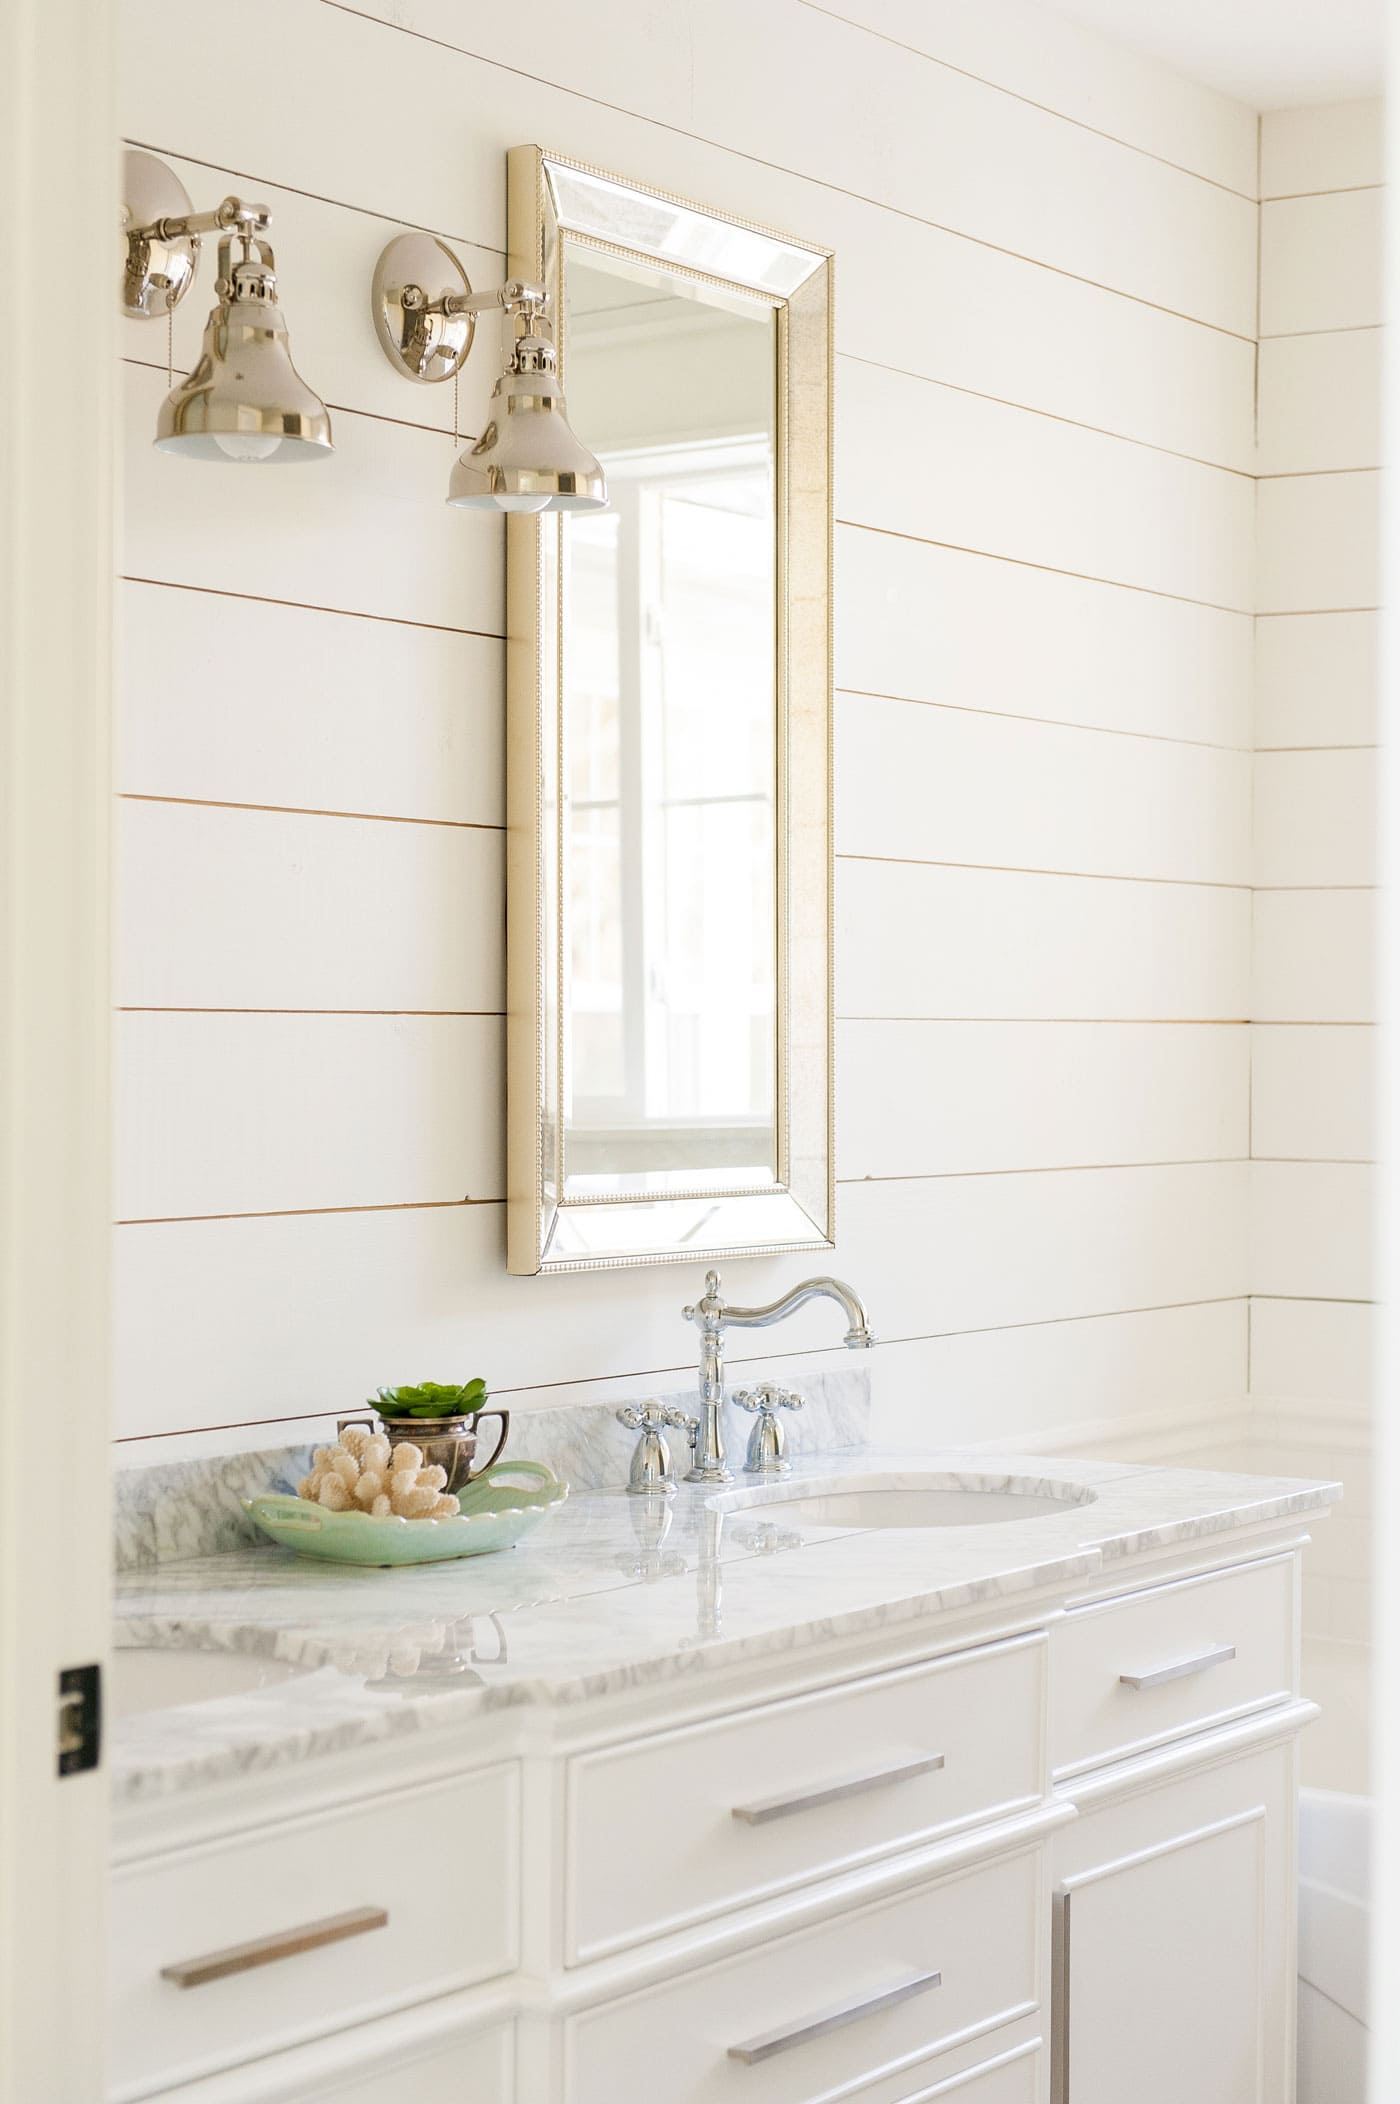 shiplap walls in a bathroom painted alabaster white